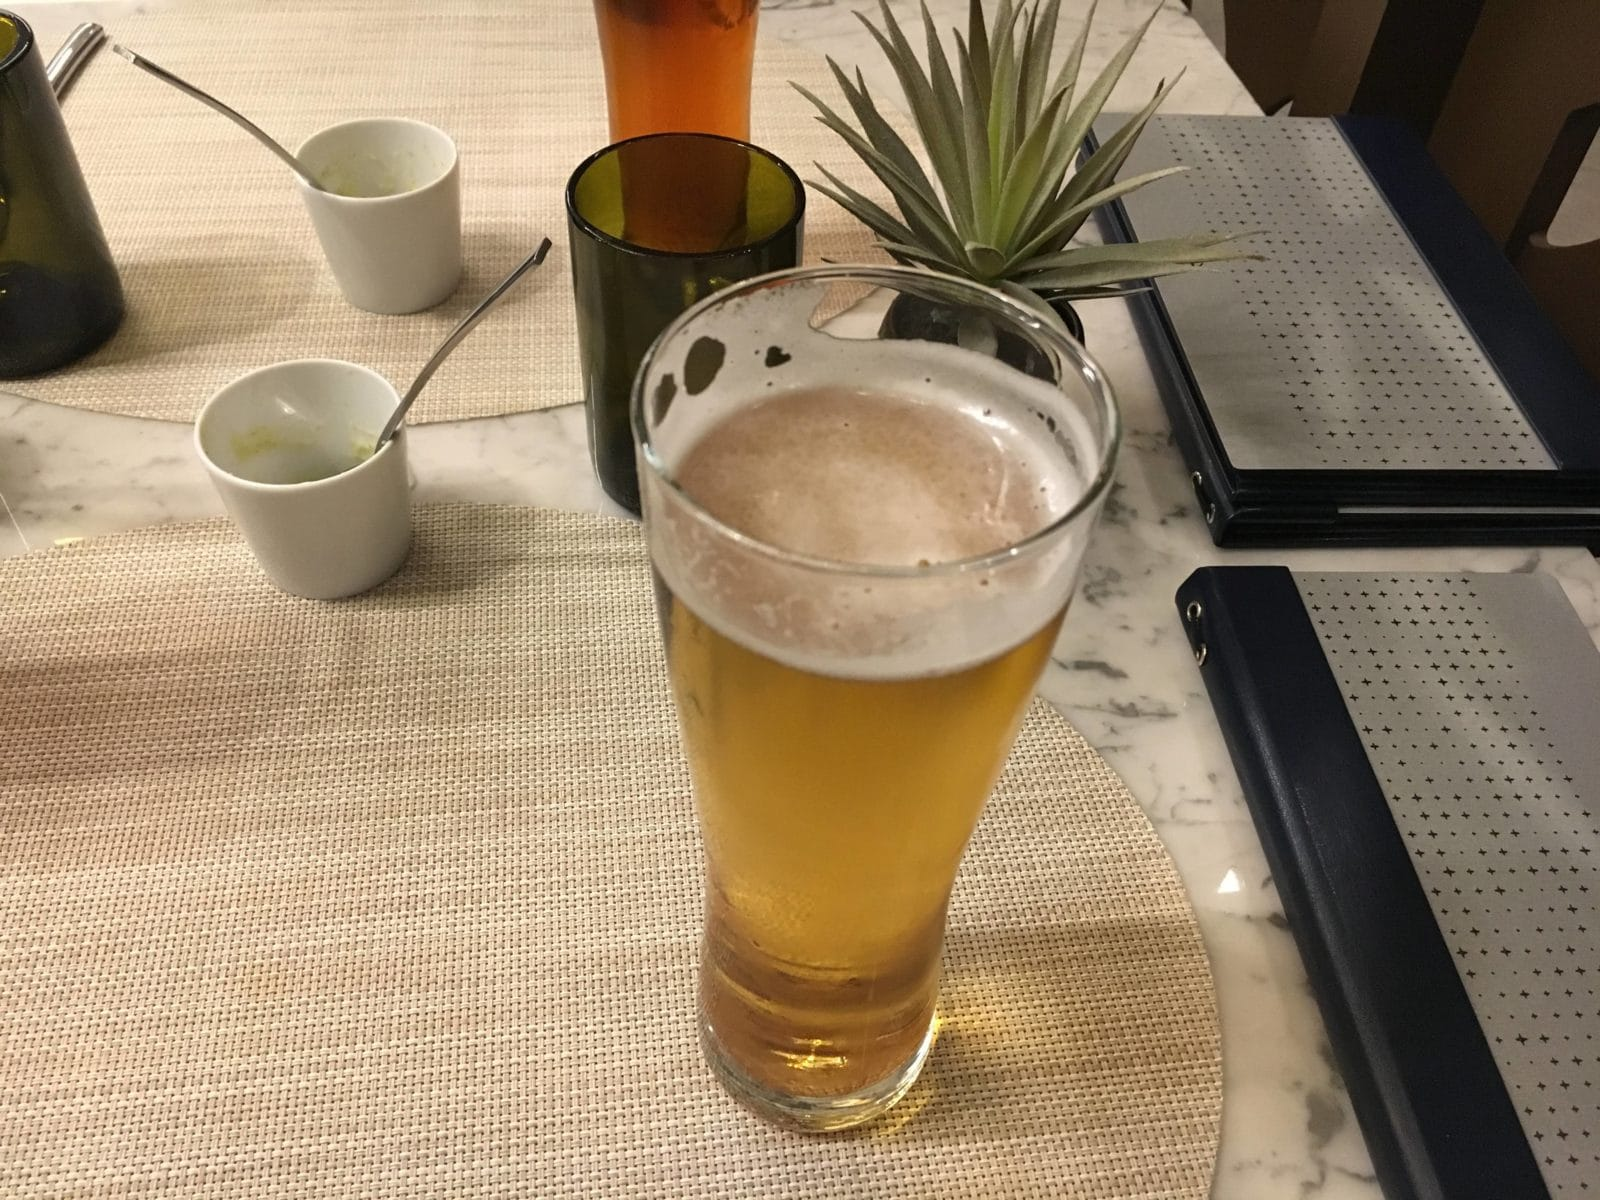 United Polaris Lounge LAX - Stella Artois Bier